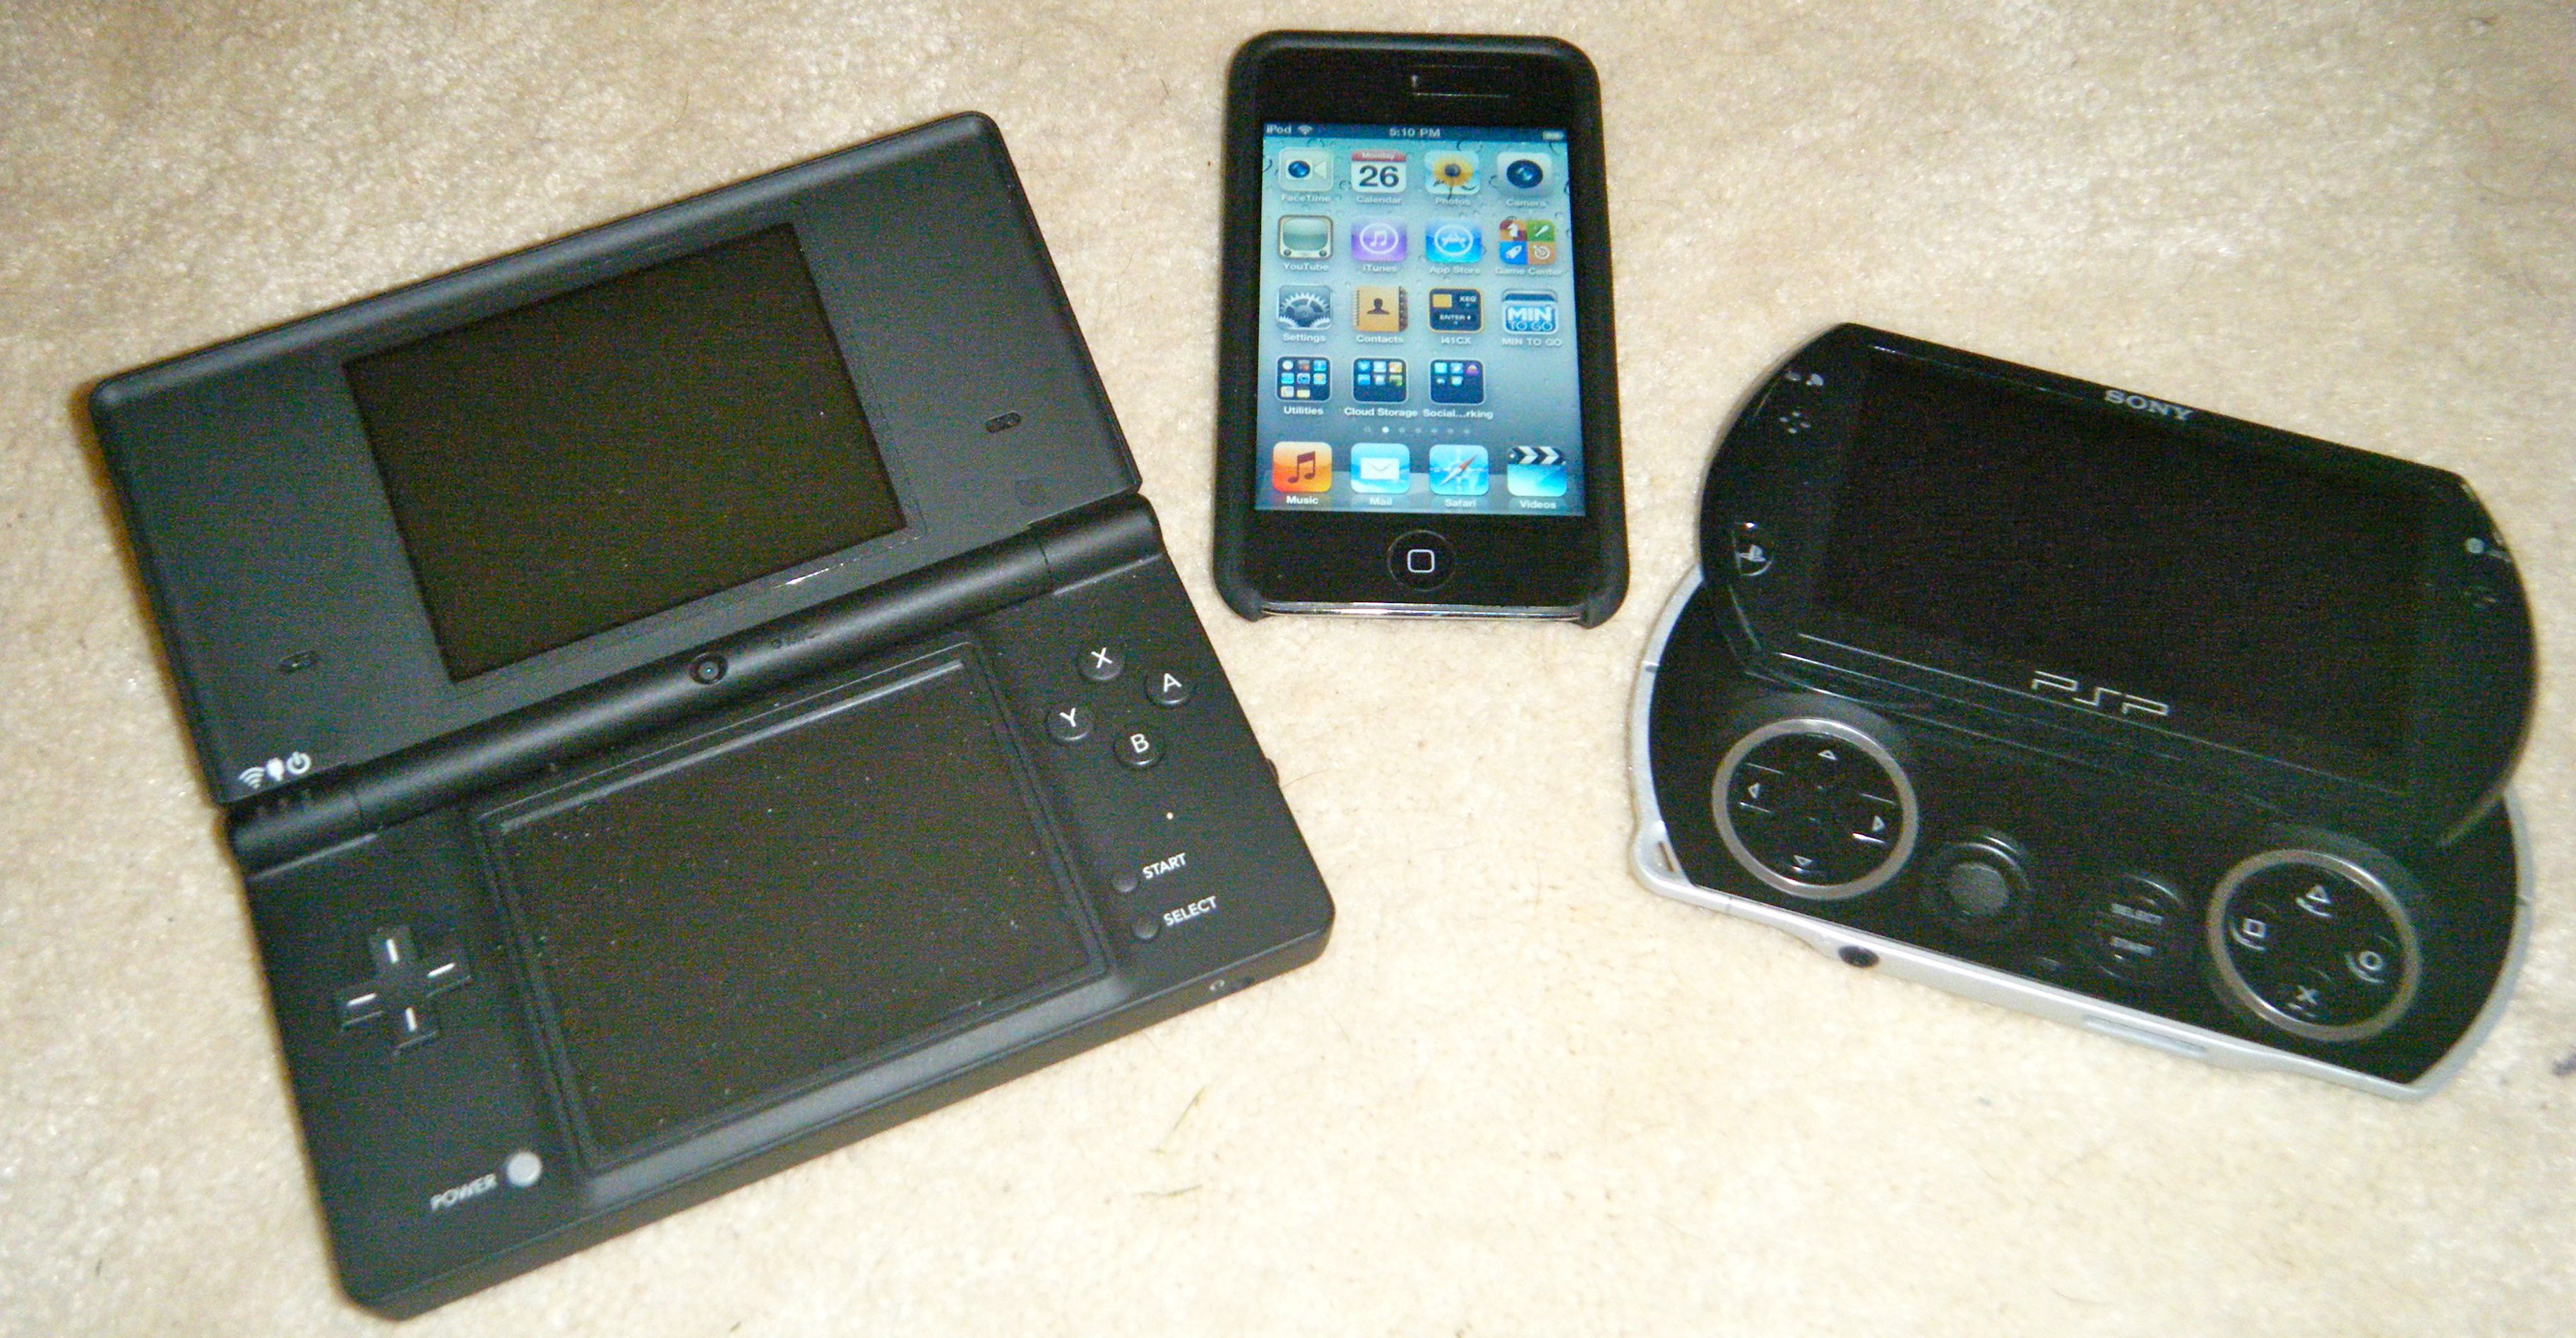 GearDiary Game System Retro-Review: iPod Touch, the MP3 Player That Killed Nintendo and Sony's Gaming Systems